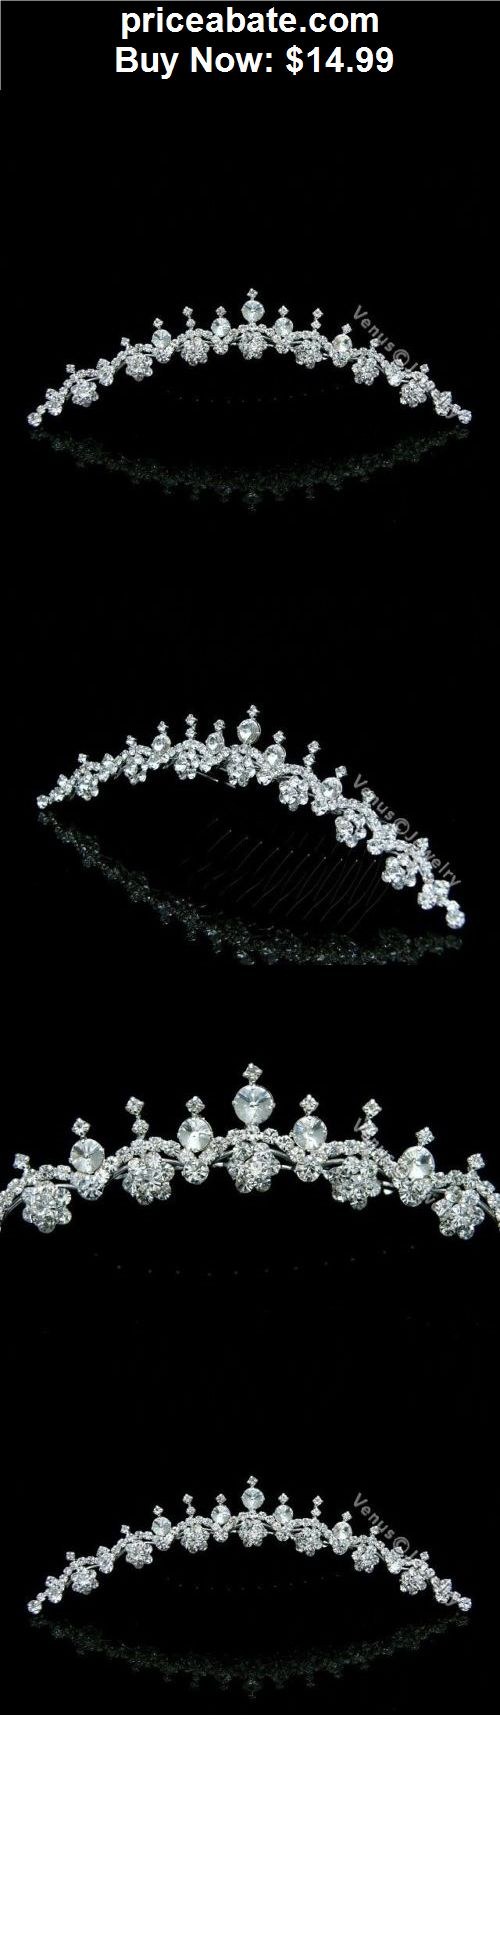 Bridal-Accessories: Bridal Rhinestone Crystal Prom Princess Wedding Tiara Comb 9592 - BUY IT NOW ONLY $14.99